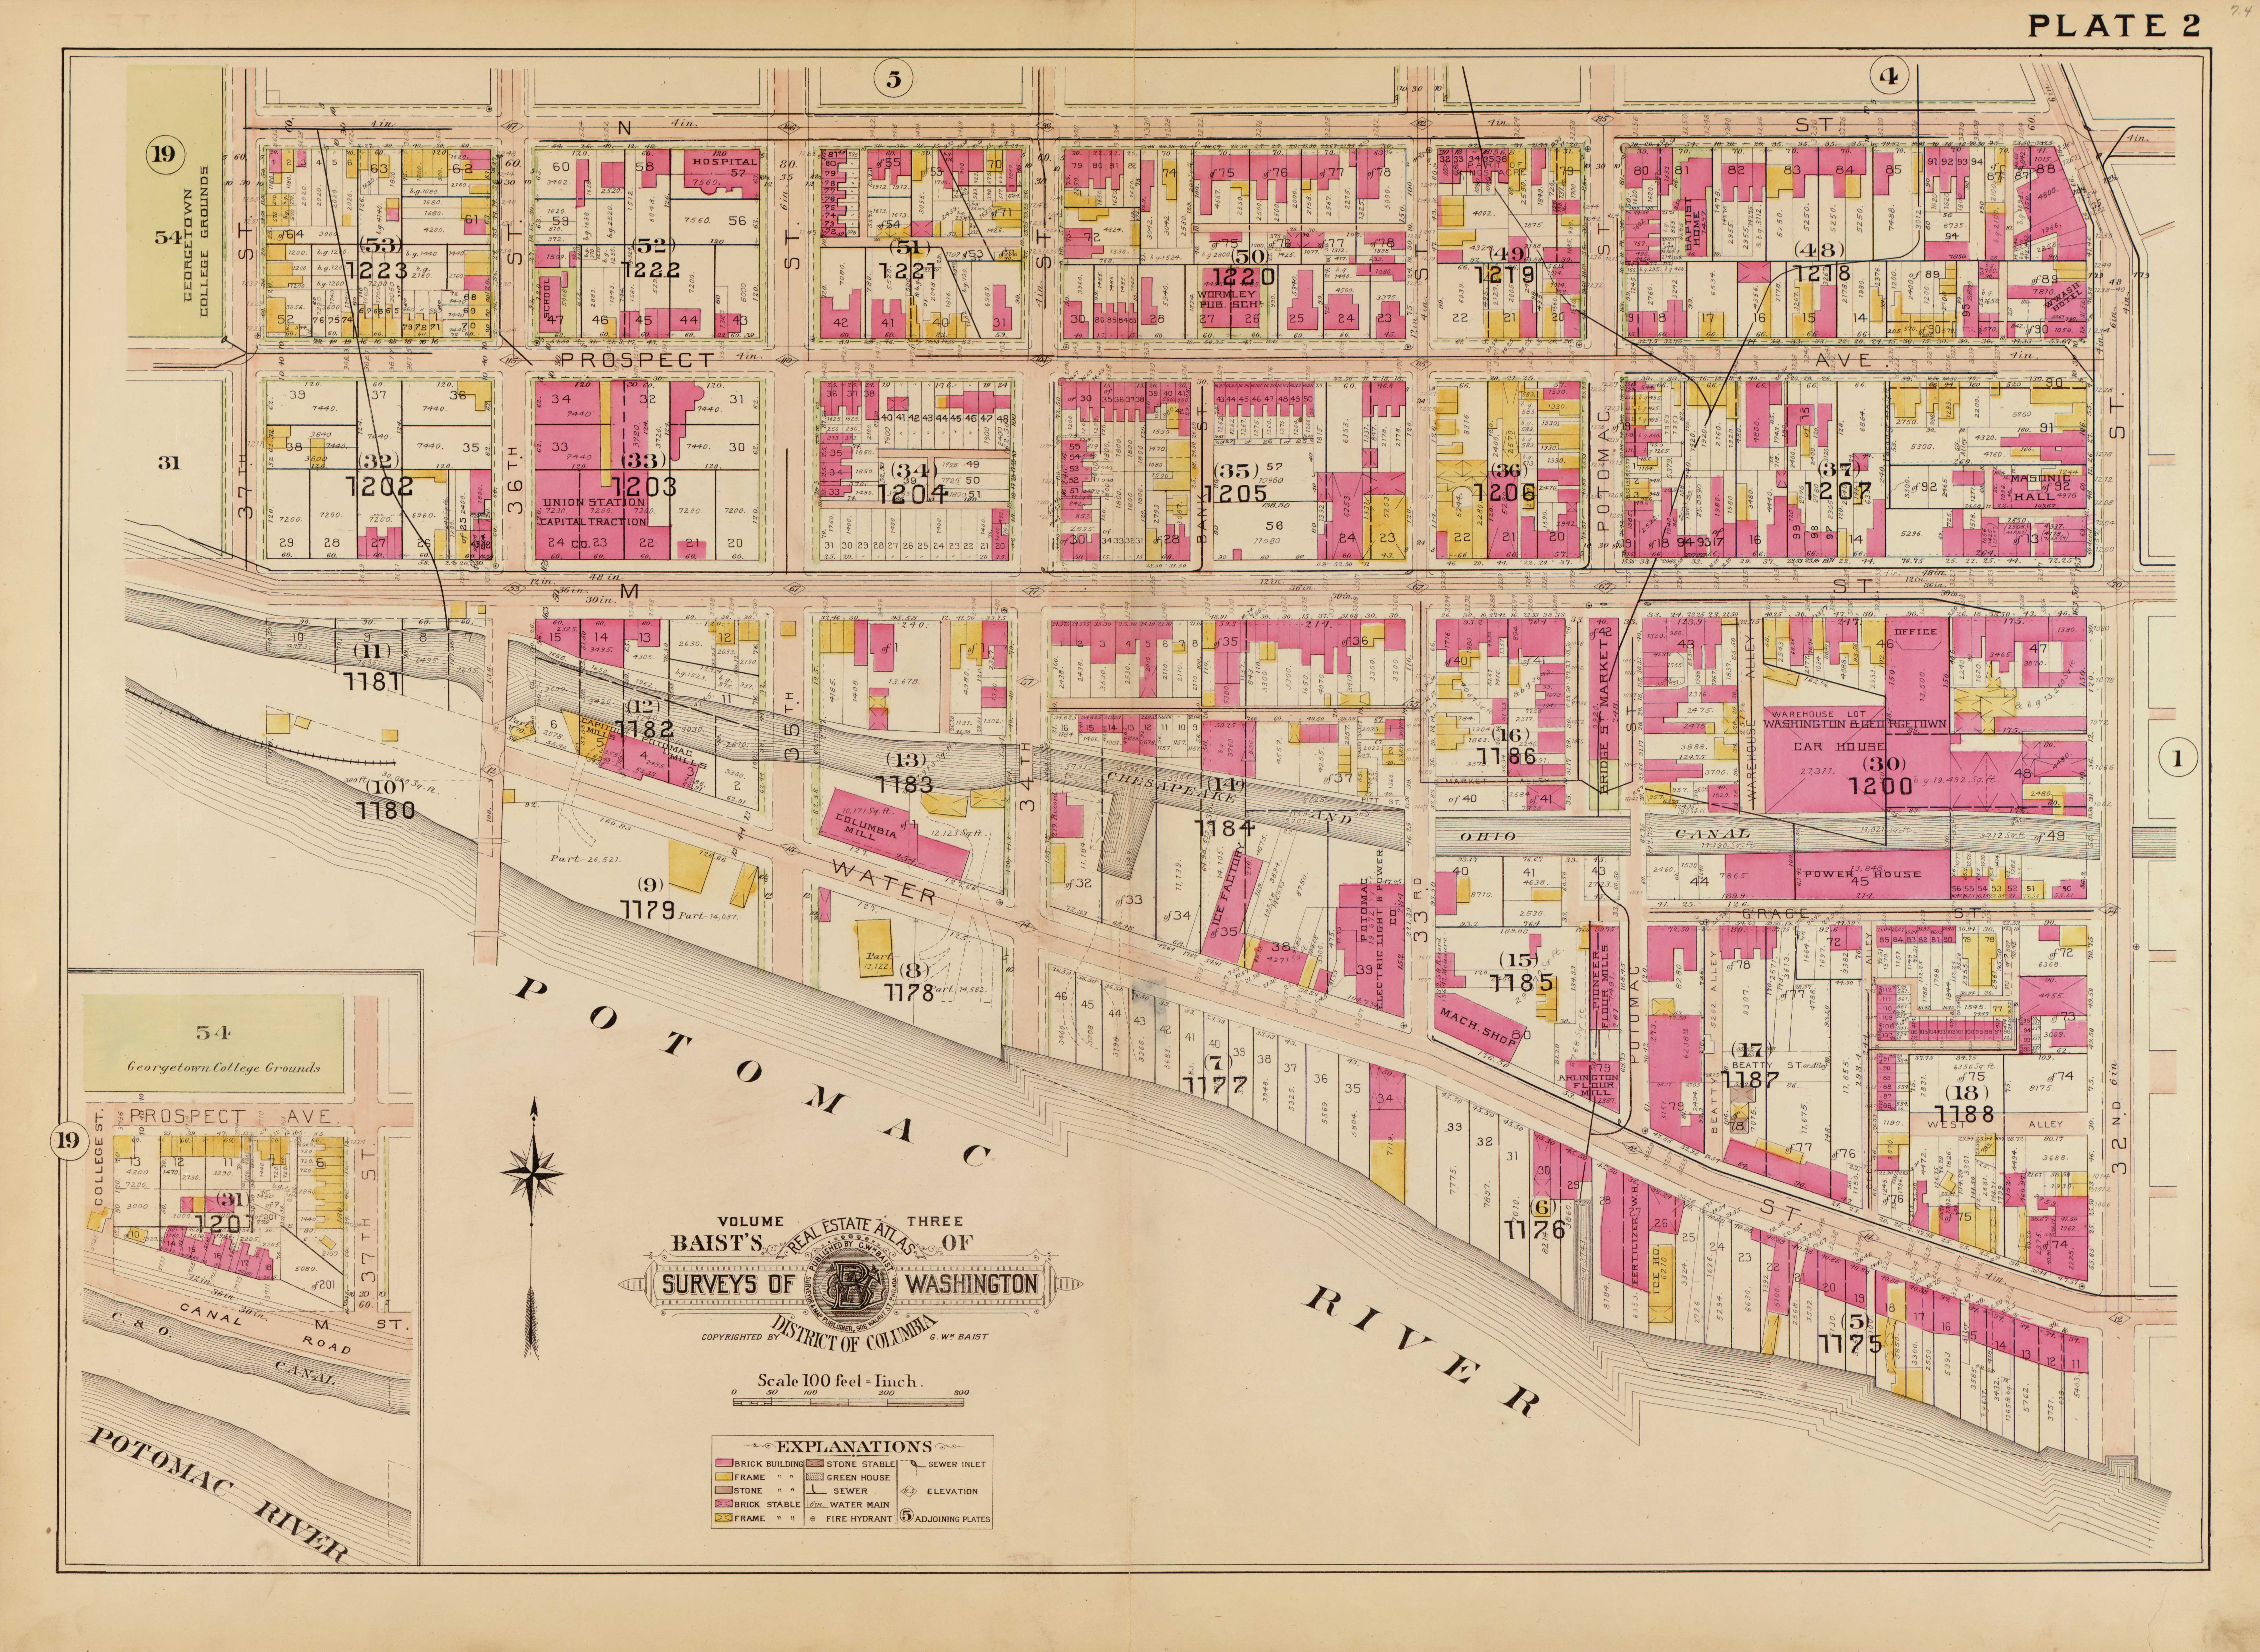 Old Survey Maps Show Georgetown Around Greater Greater - Washington dc plat map